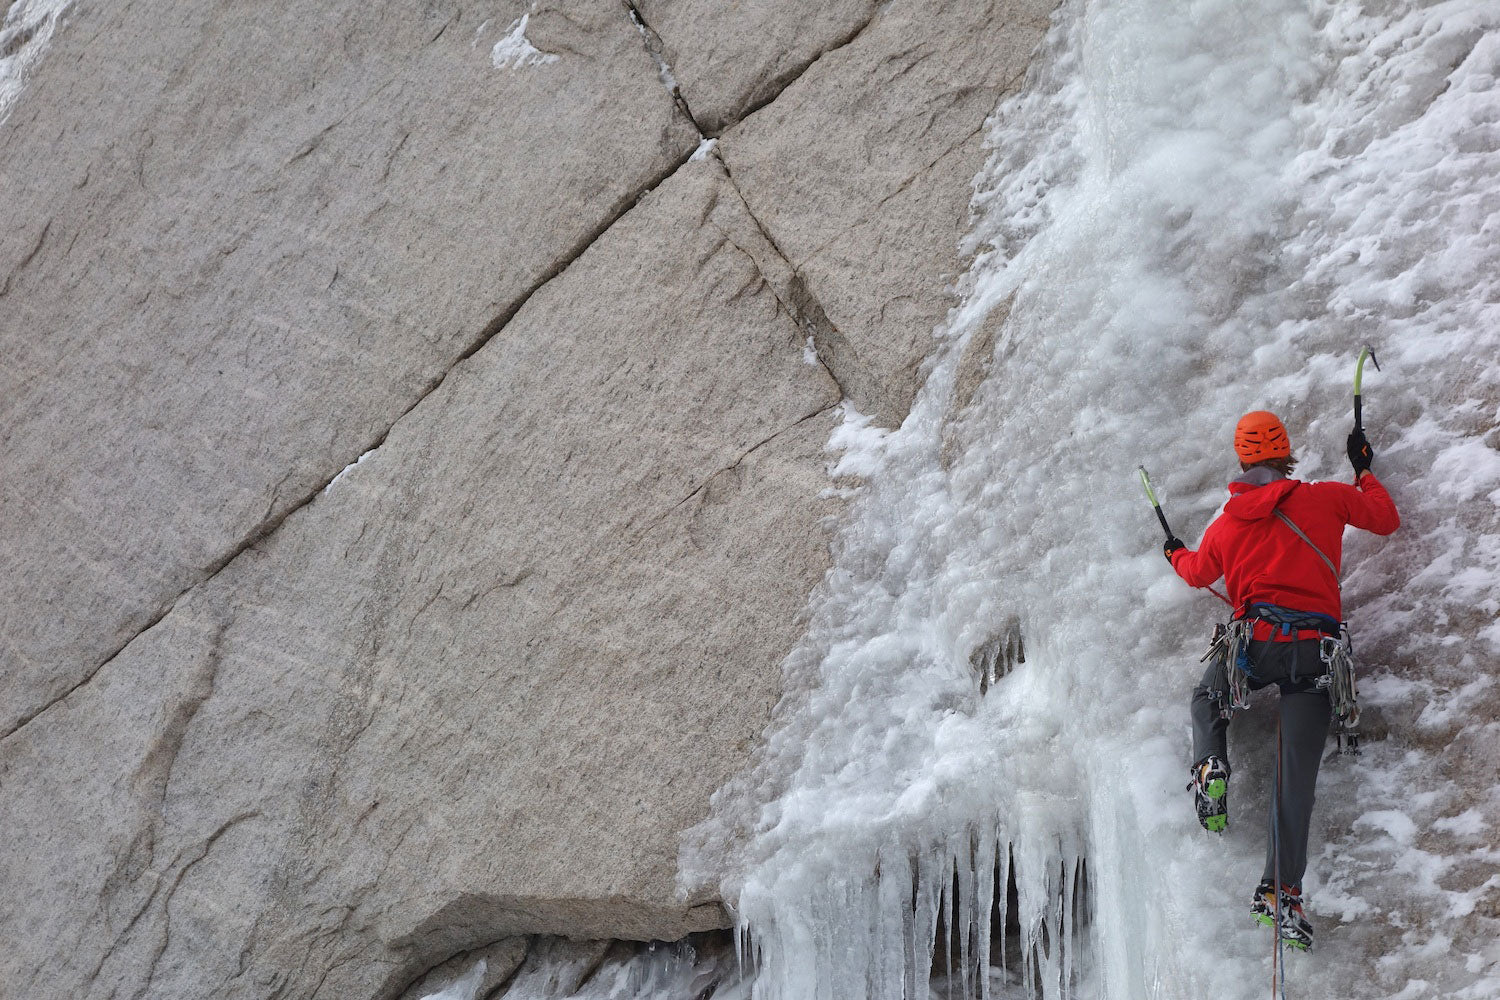 """Kurt Ross on """"Crazy Train,"""" on the Lower East Face of Longs Peak. Photo by Ryan Vachon."""